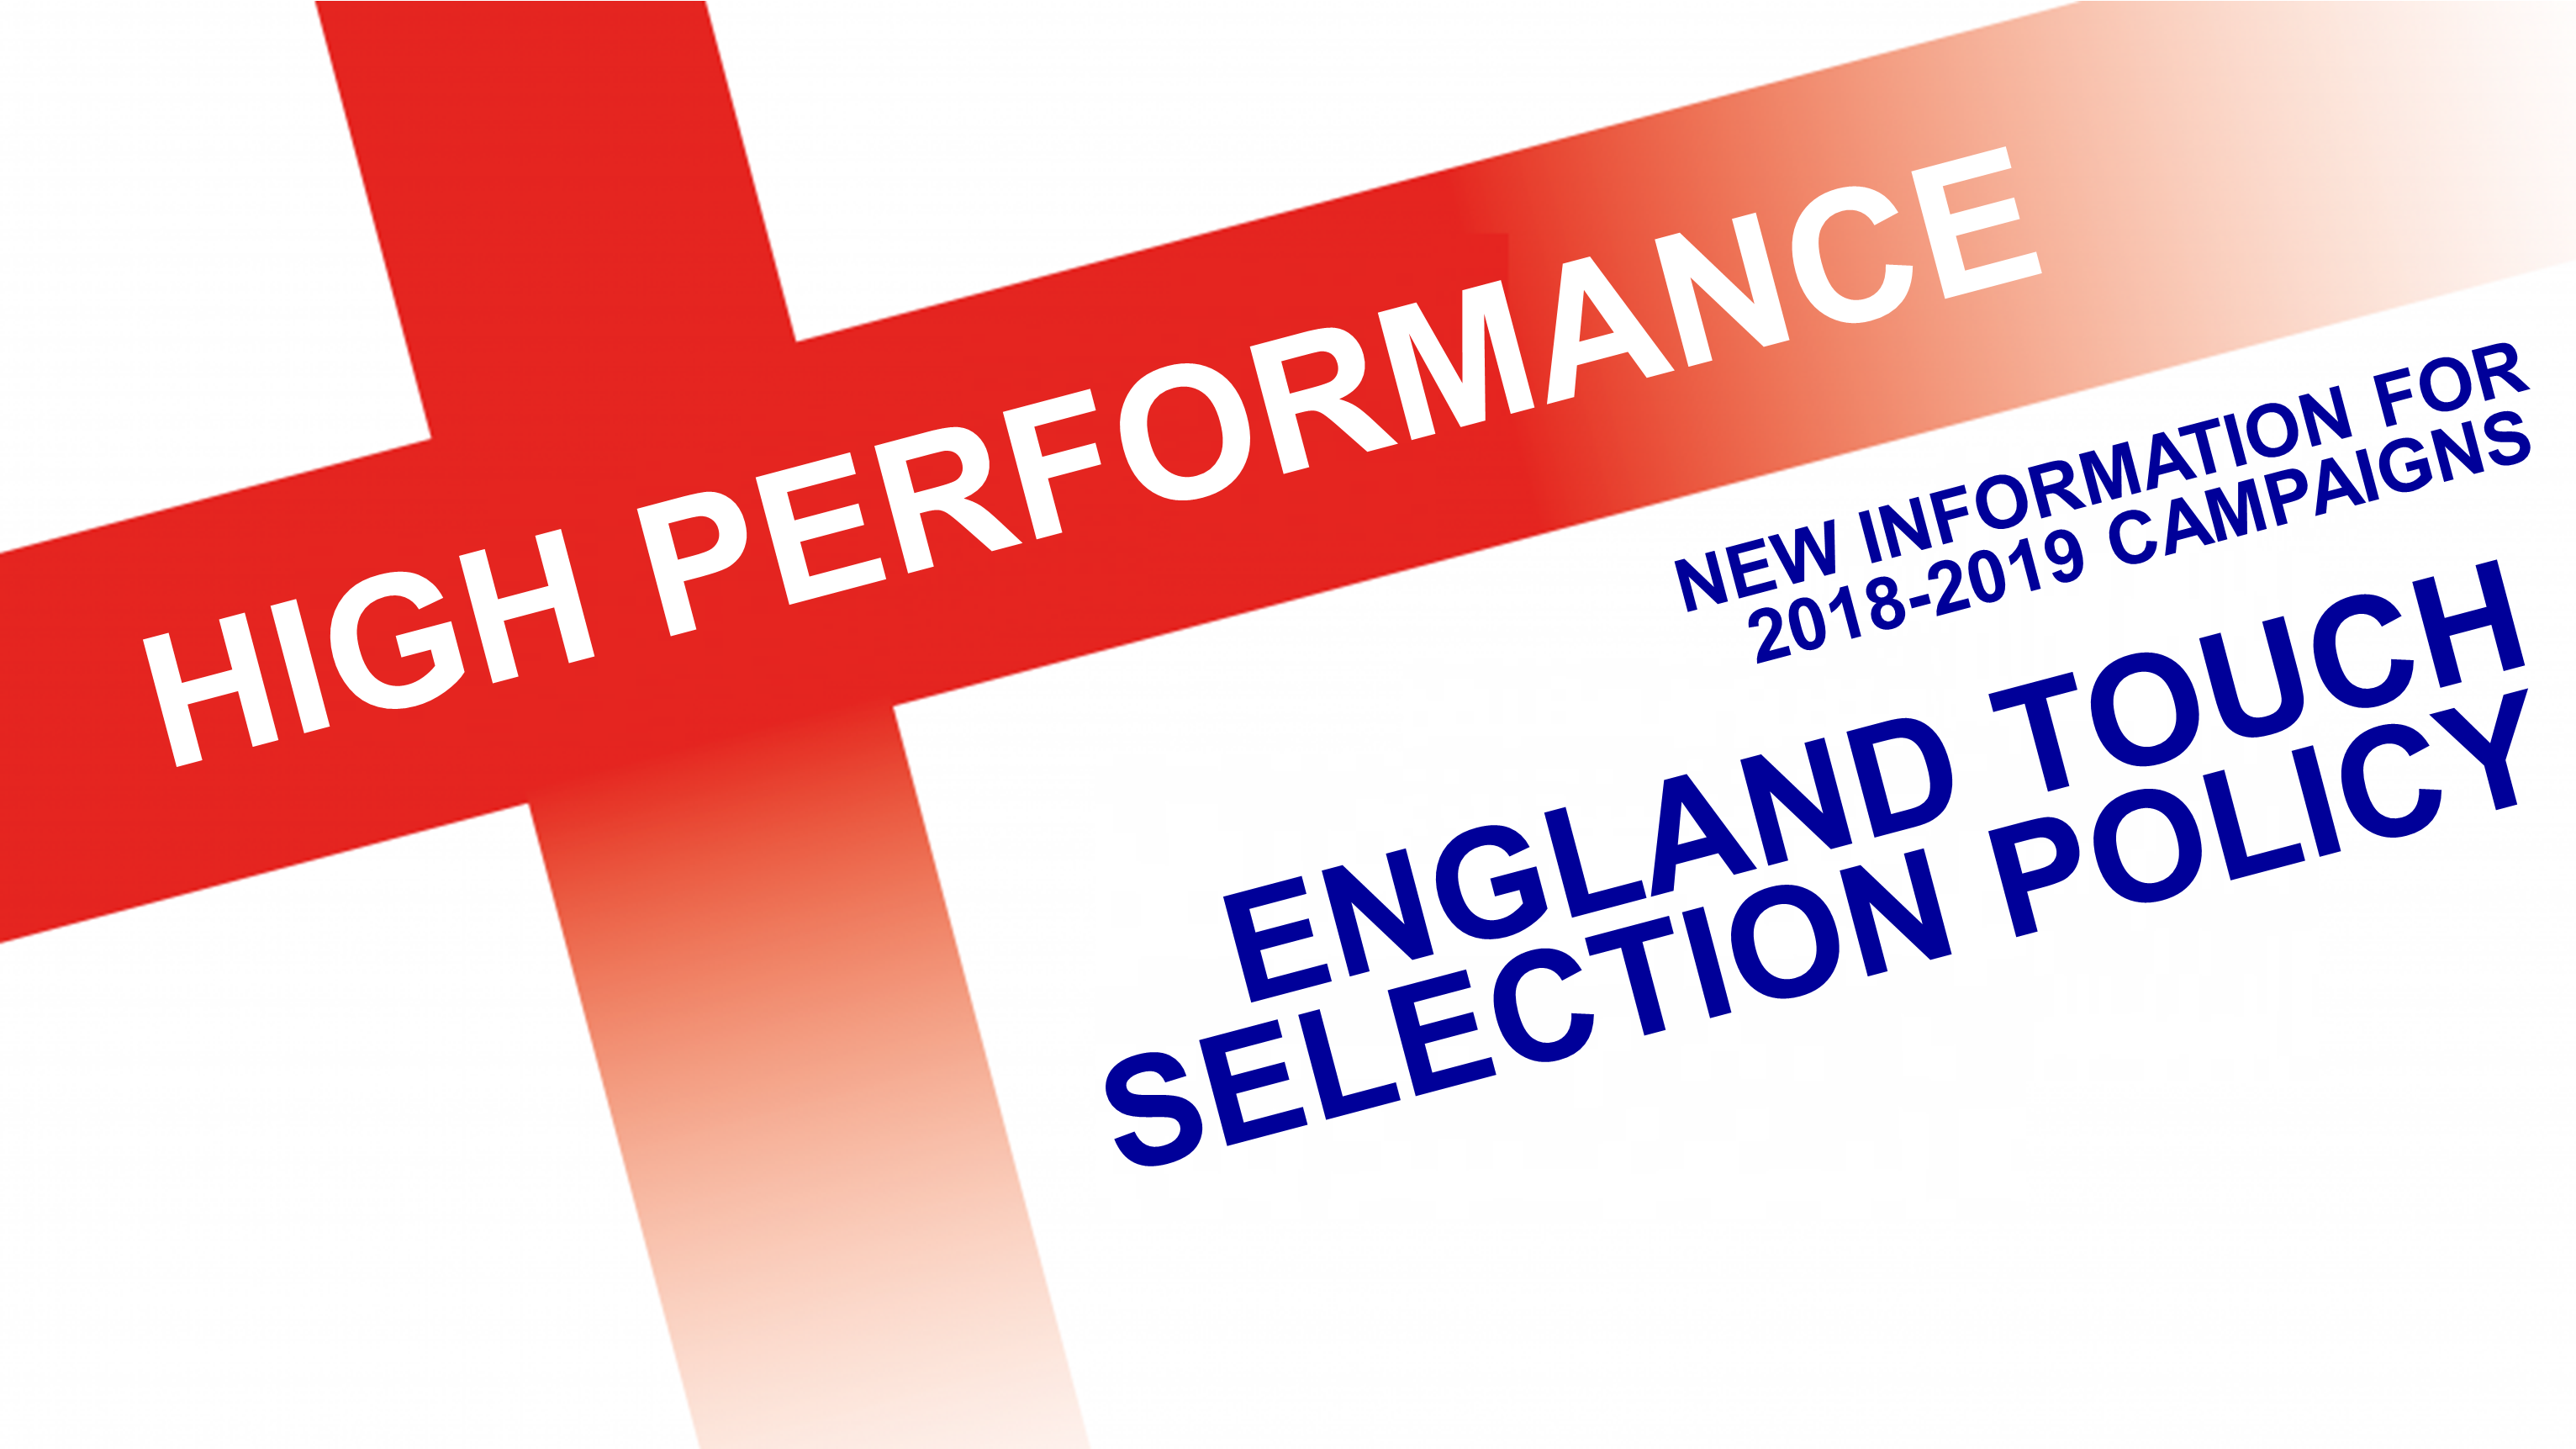 High Performance Selection Policy